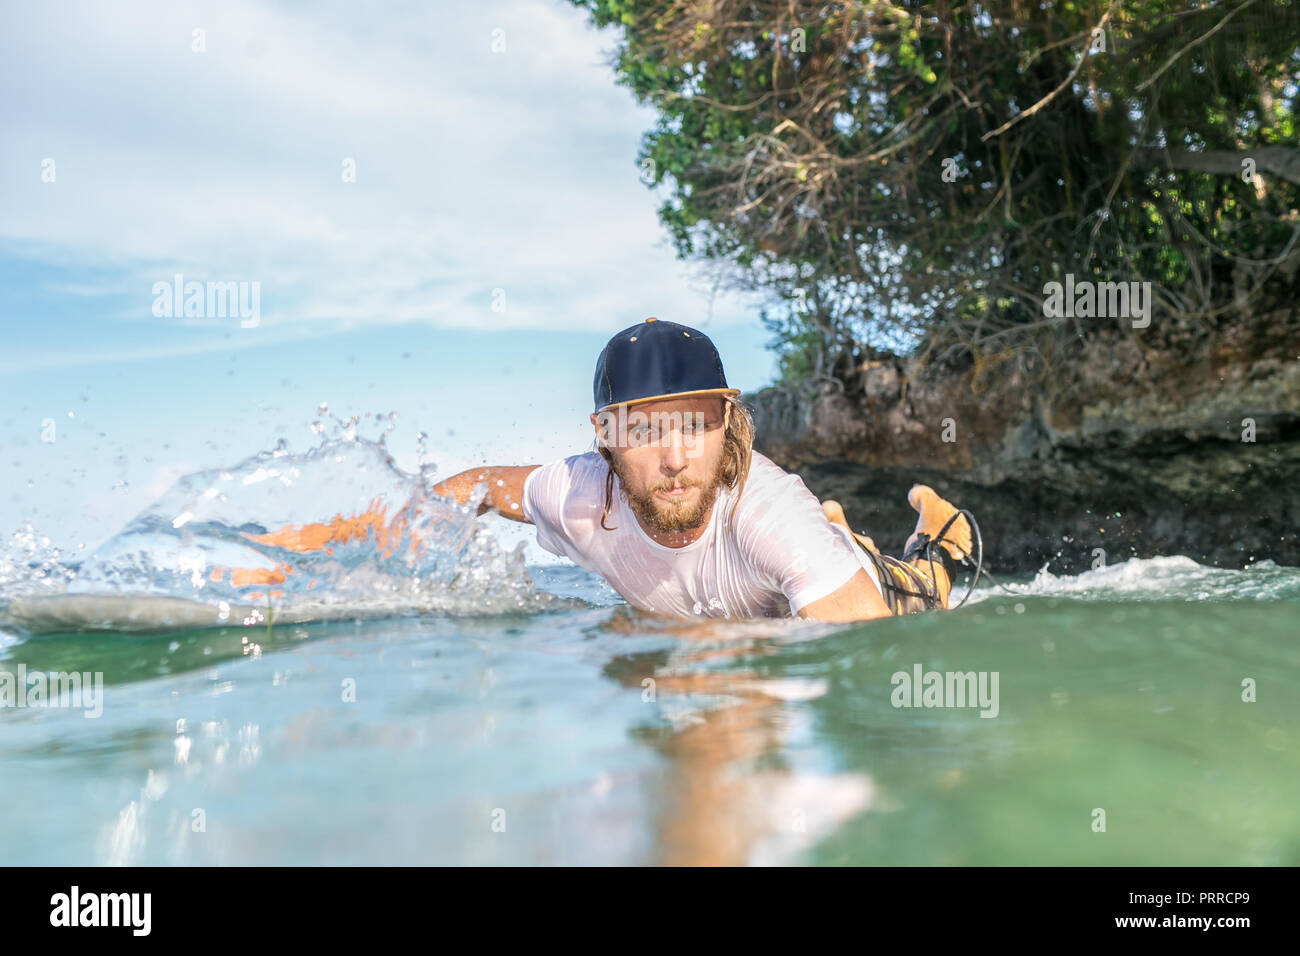 serious male surfer swimming on surfing board in ocean at Nusa Dua Beach, Bali, Indonesia - Stock Image